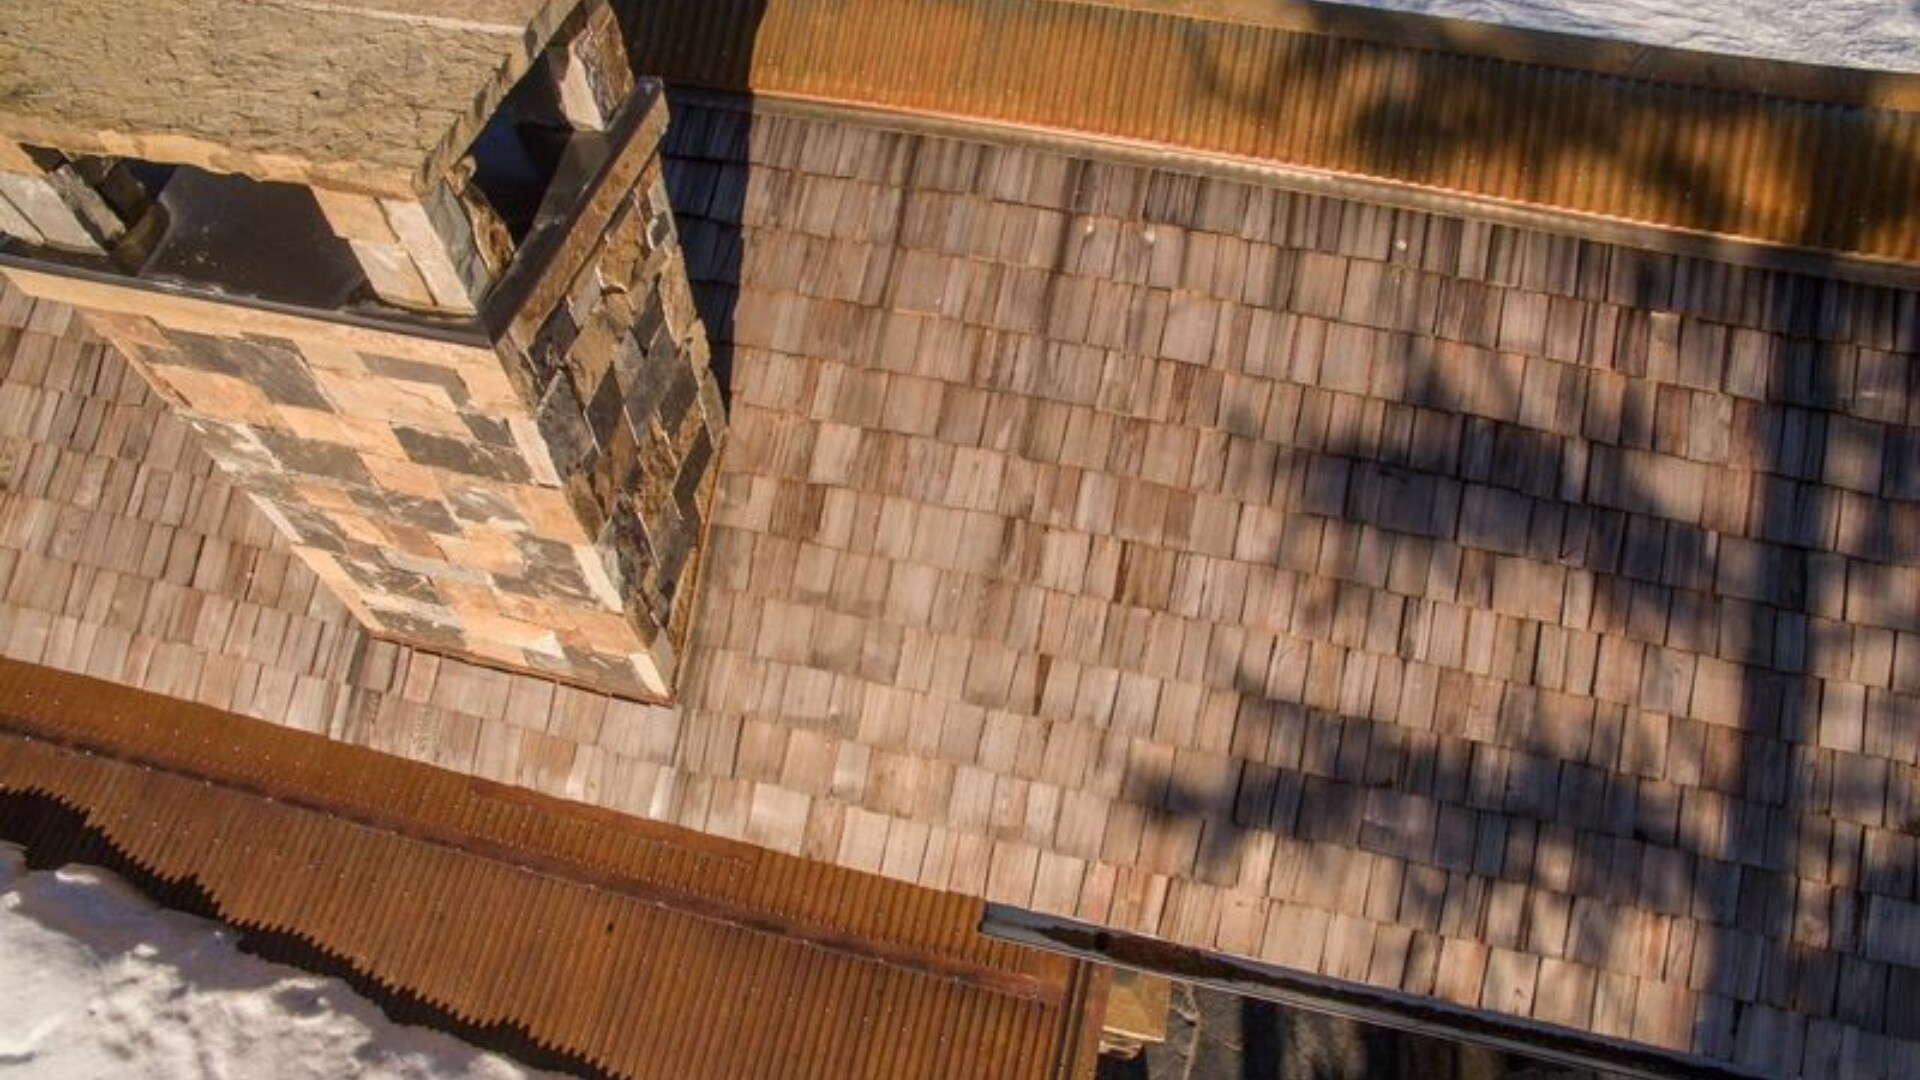 aerial view of pask guest house roof with wooden shingles and a large stone chimney